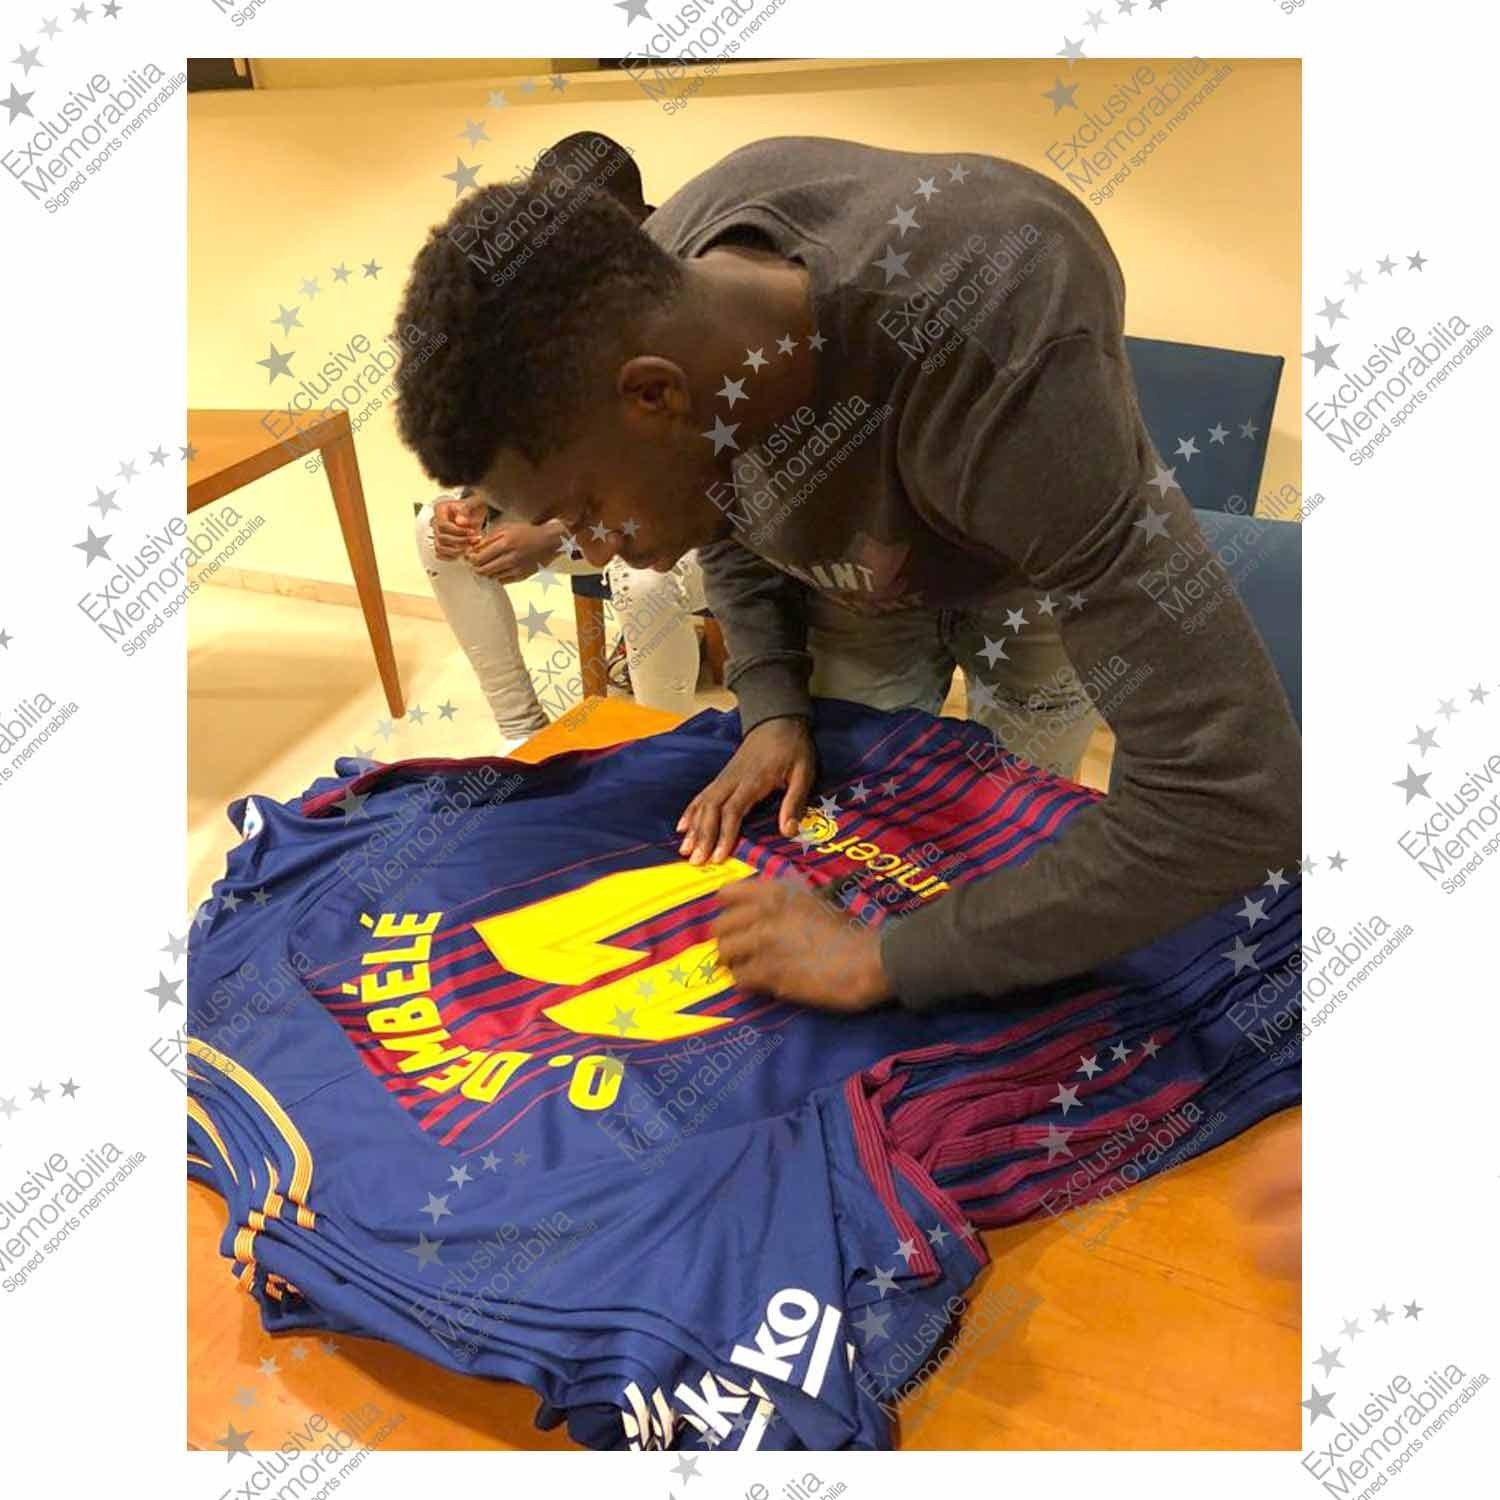 Ousmane Dembele Signed Barcelona 2017-18 Football Shirt In Deluxe Frame | Autographed Sports Memorabilia at Amazons Sports Collectibles Store